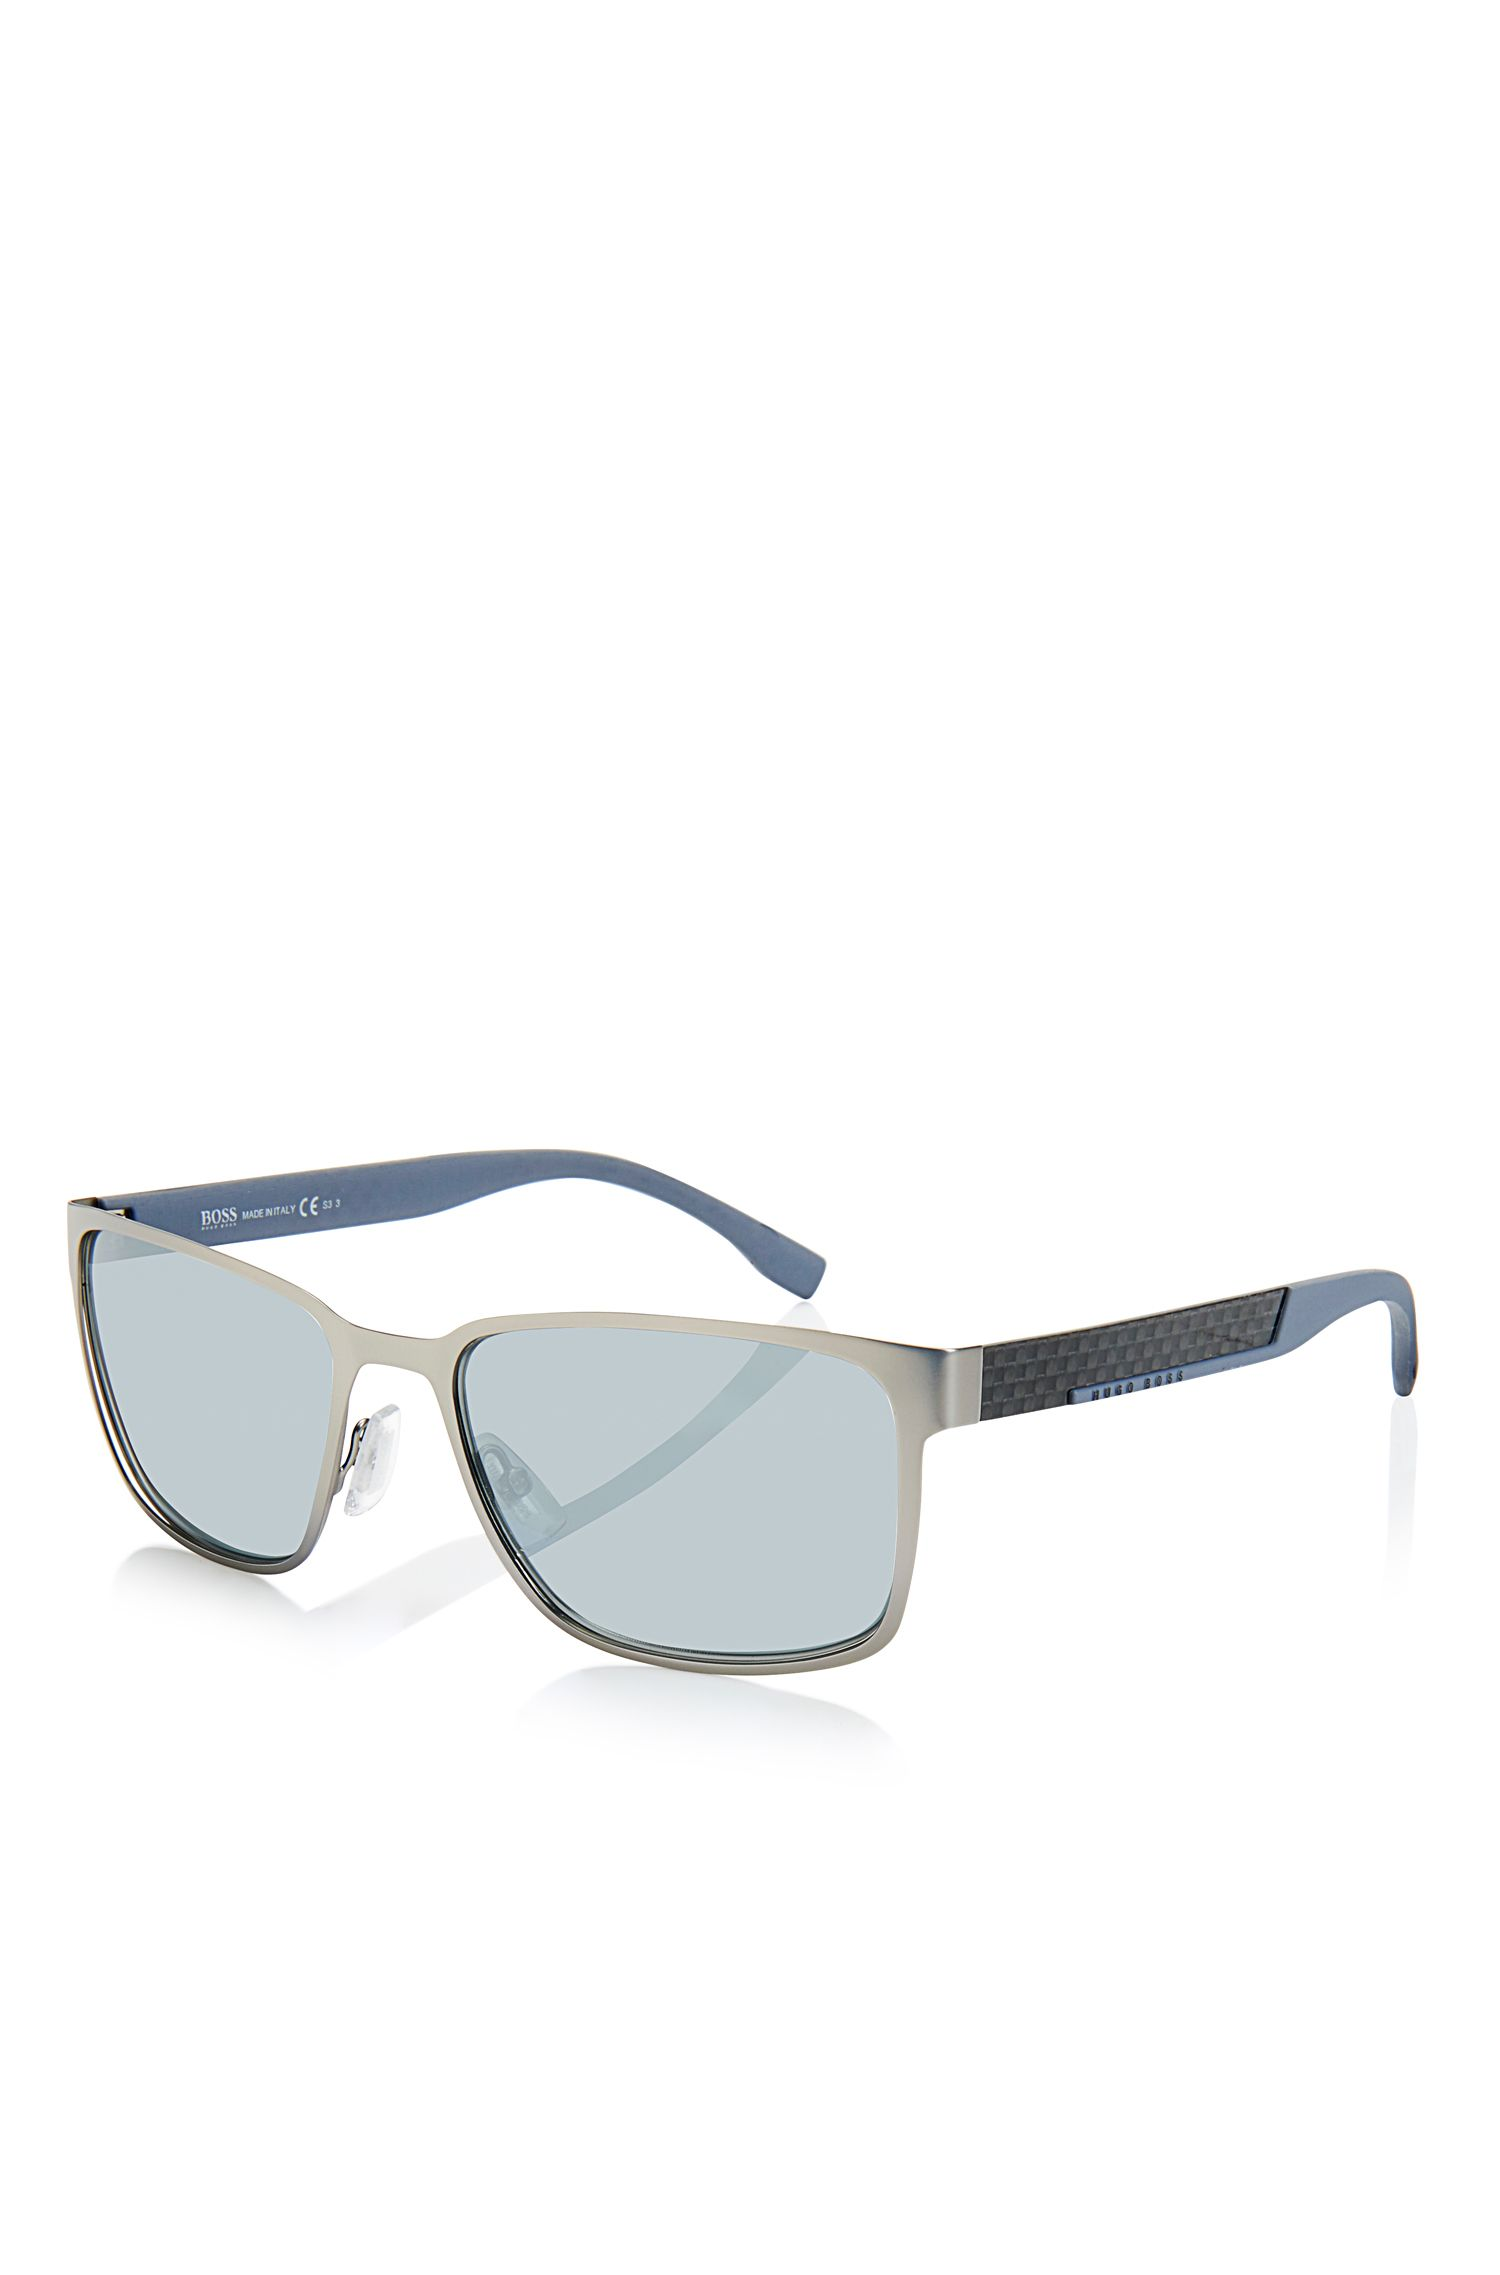 Steel and Carbon Black Mirror Lens Sunglasses | BOSS 0638, Assorted-Pre-Pack